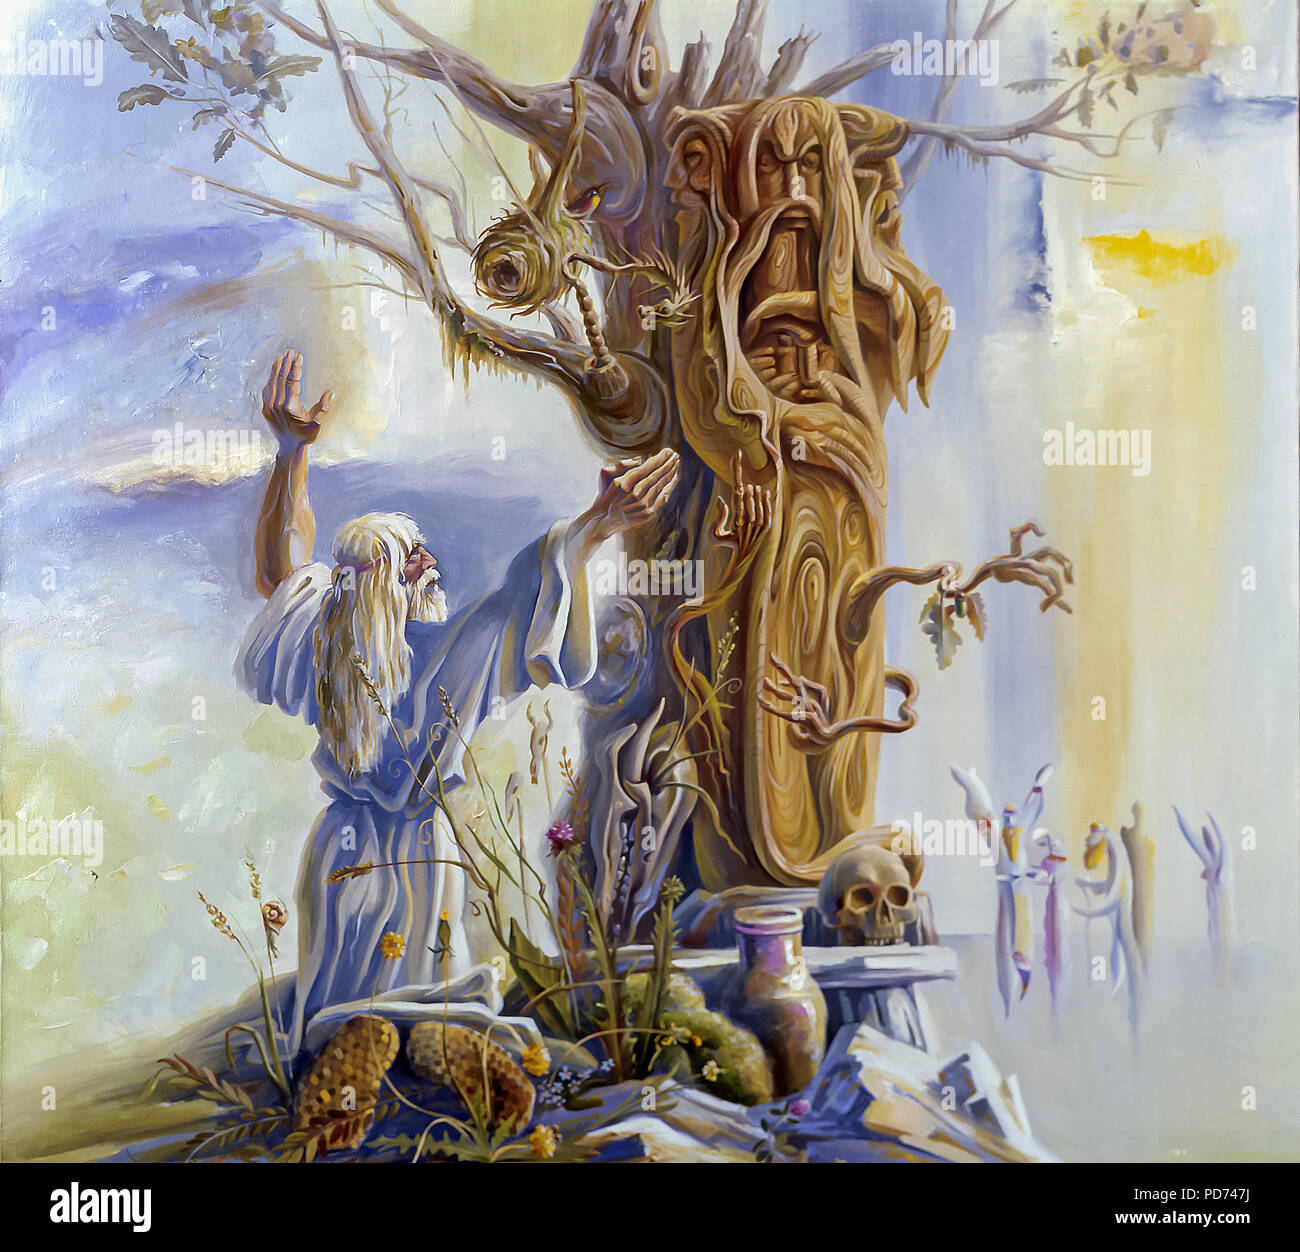 An oil painting on canvas. Worship of a wooden idol. Old Slavic paganism. Author: Nikolay Sivenkov. - Stock Image